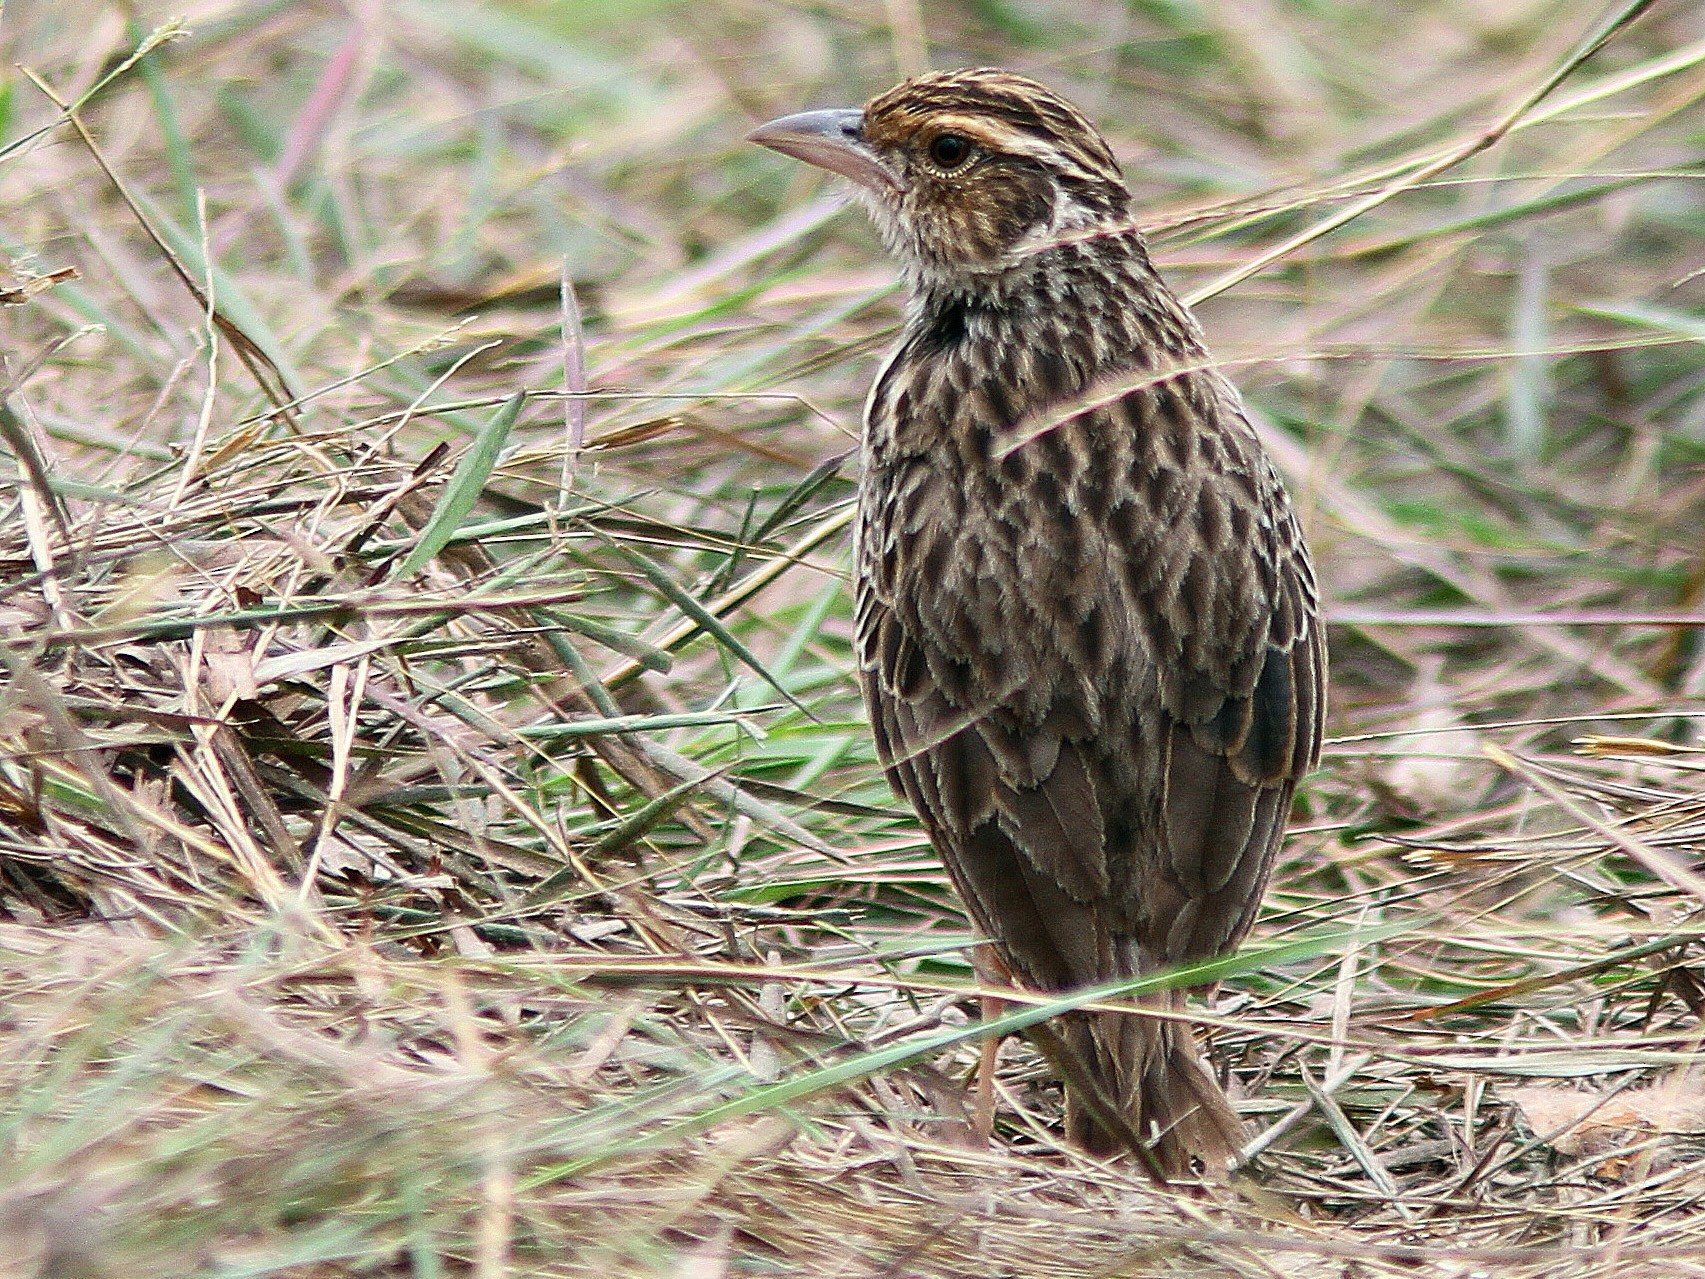 Indochinese Bushlark - Guy Poisson